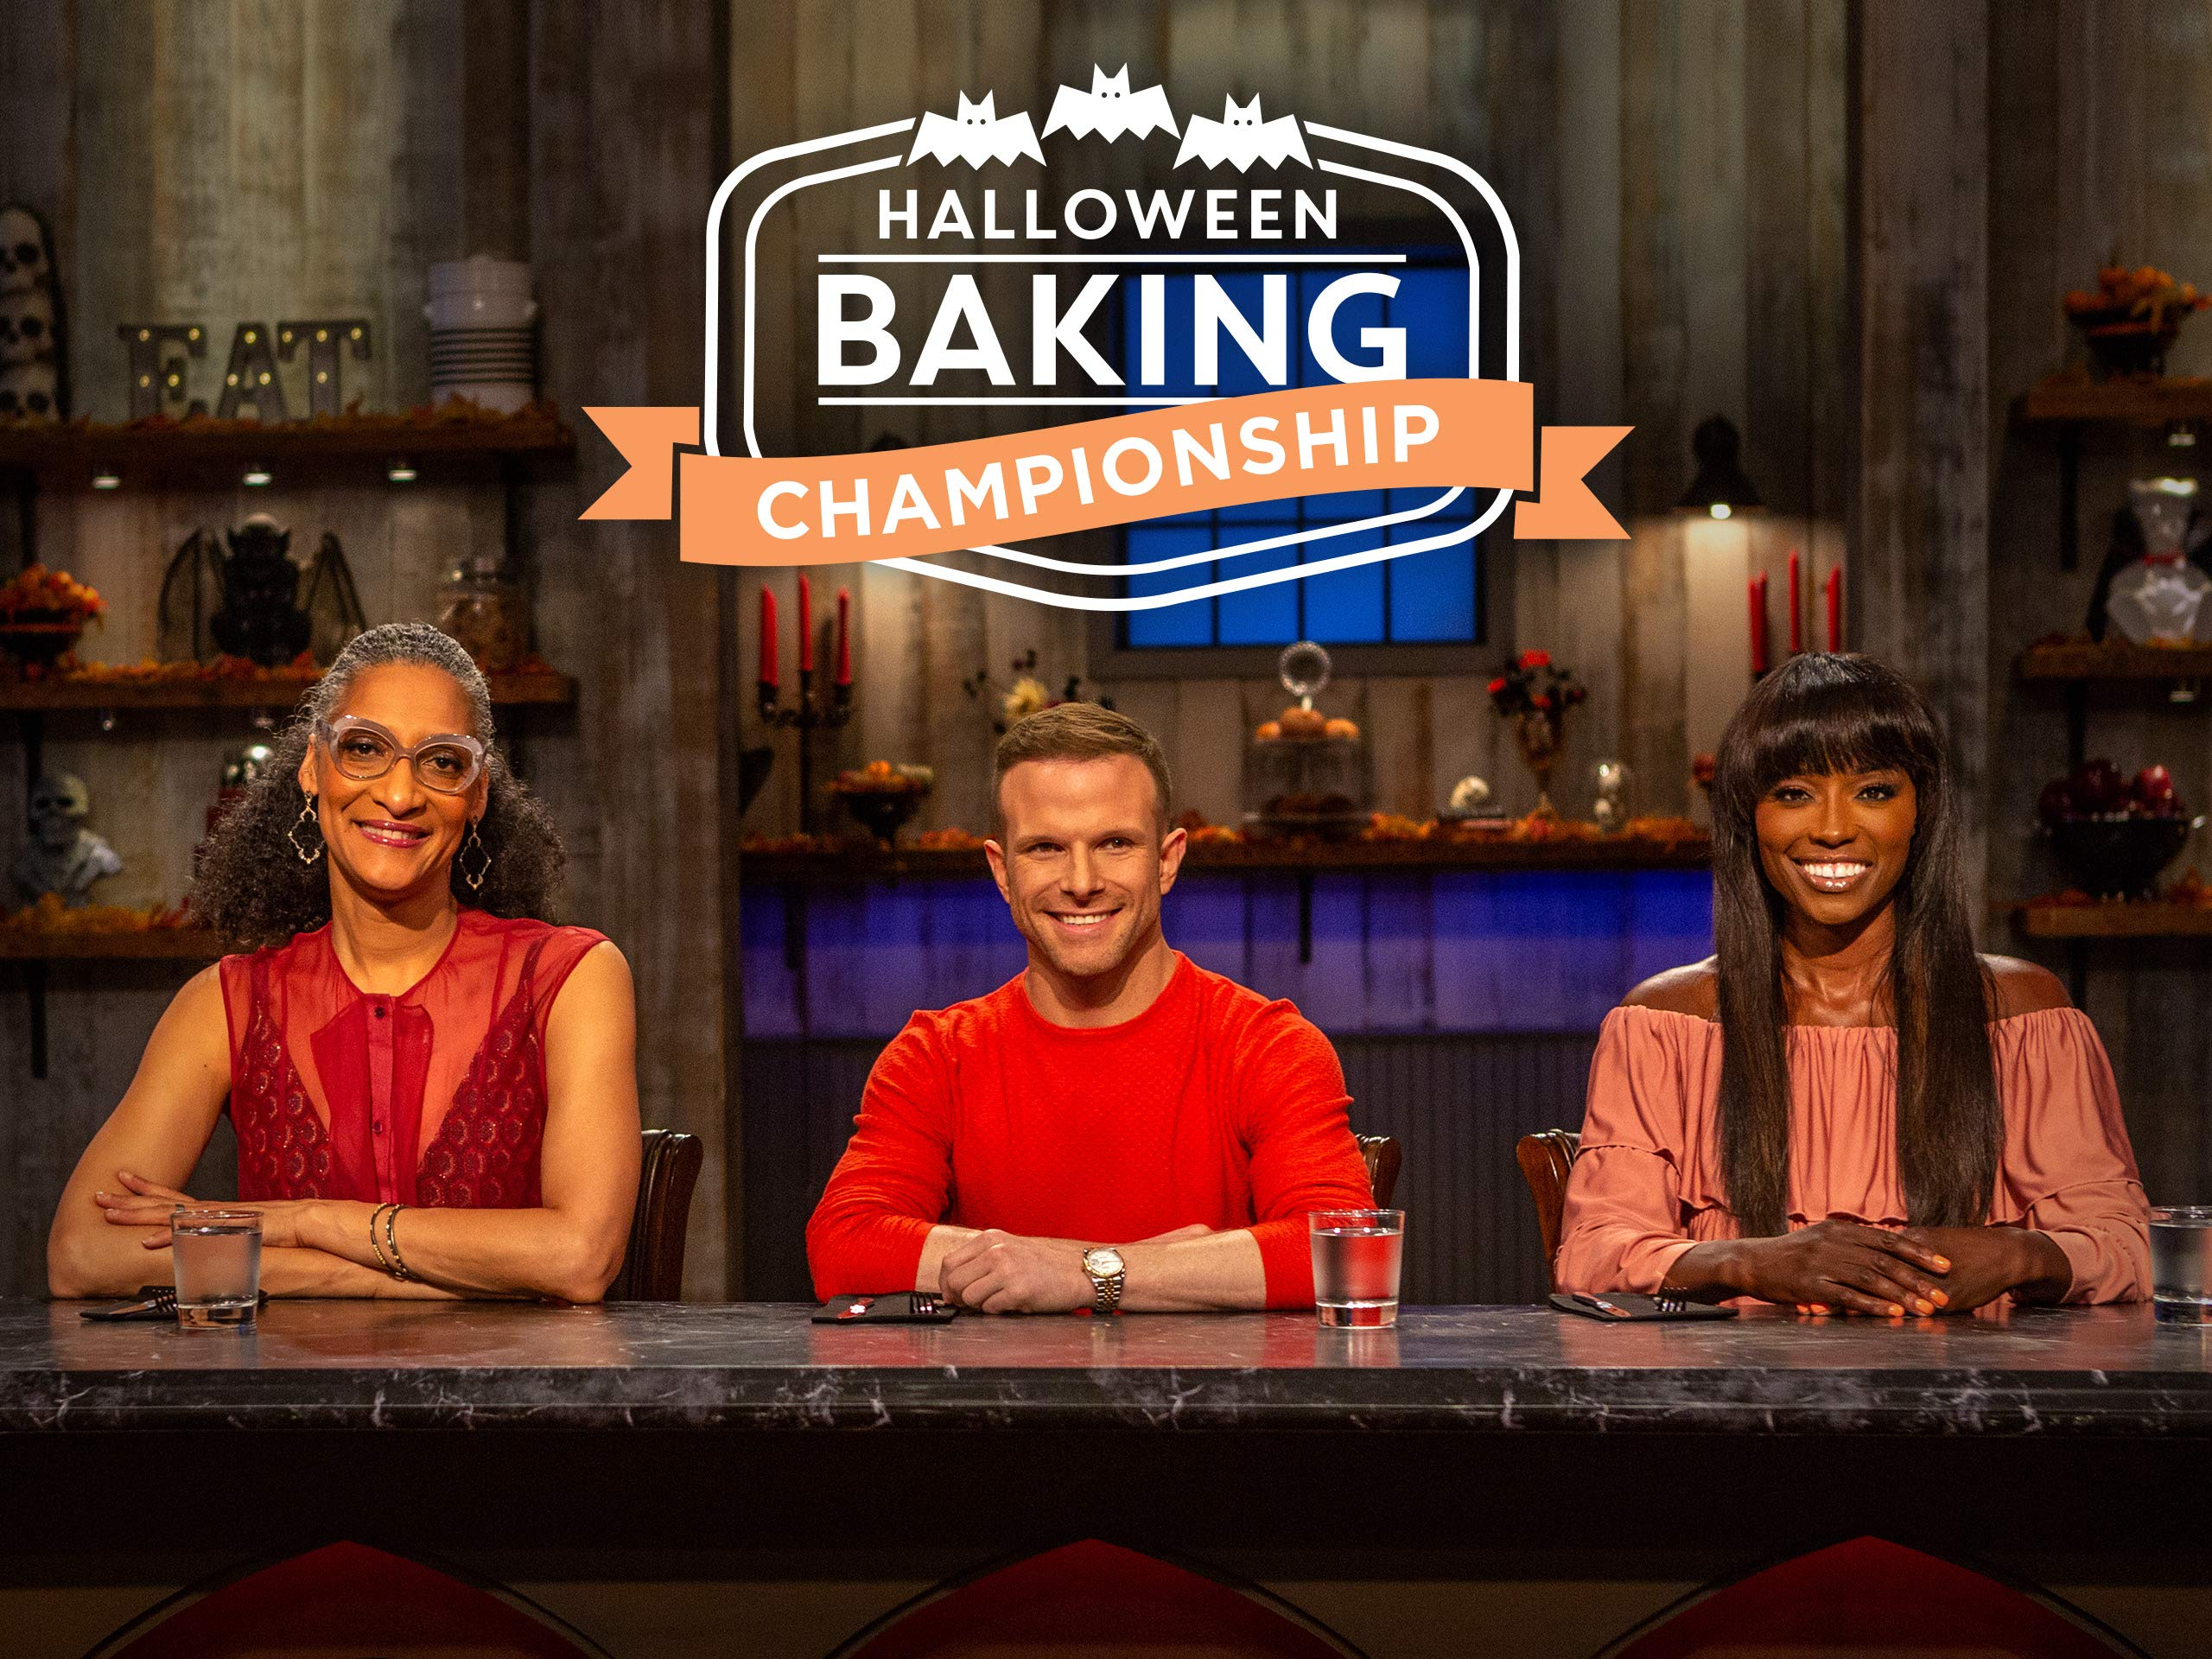 Halloween Baking Championship 2020 Episode 1 Watch Halloween Baking Championship, Season 4 | Prime Video